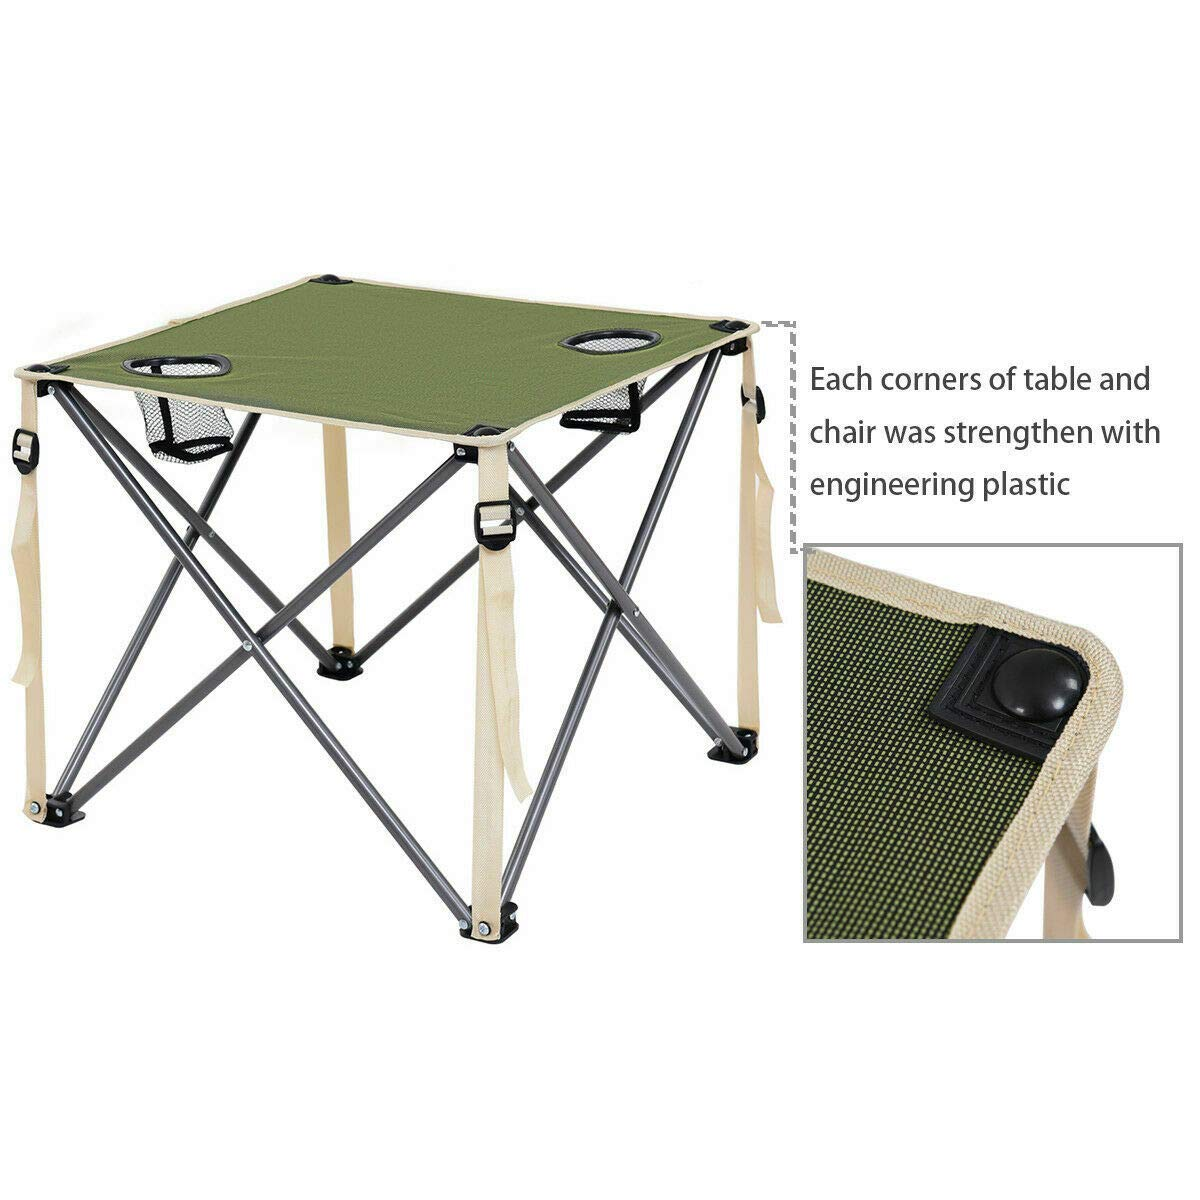 ANA Store Enjoy Barbecue Party Curl Stand Iron Stell Frame Green Oxford Portable Folding Table Chairs Set Inside Outside Camp Beach Picnic with Carrying Bag by ANA Store (Image #5)